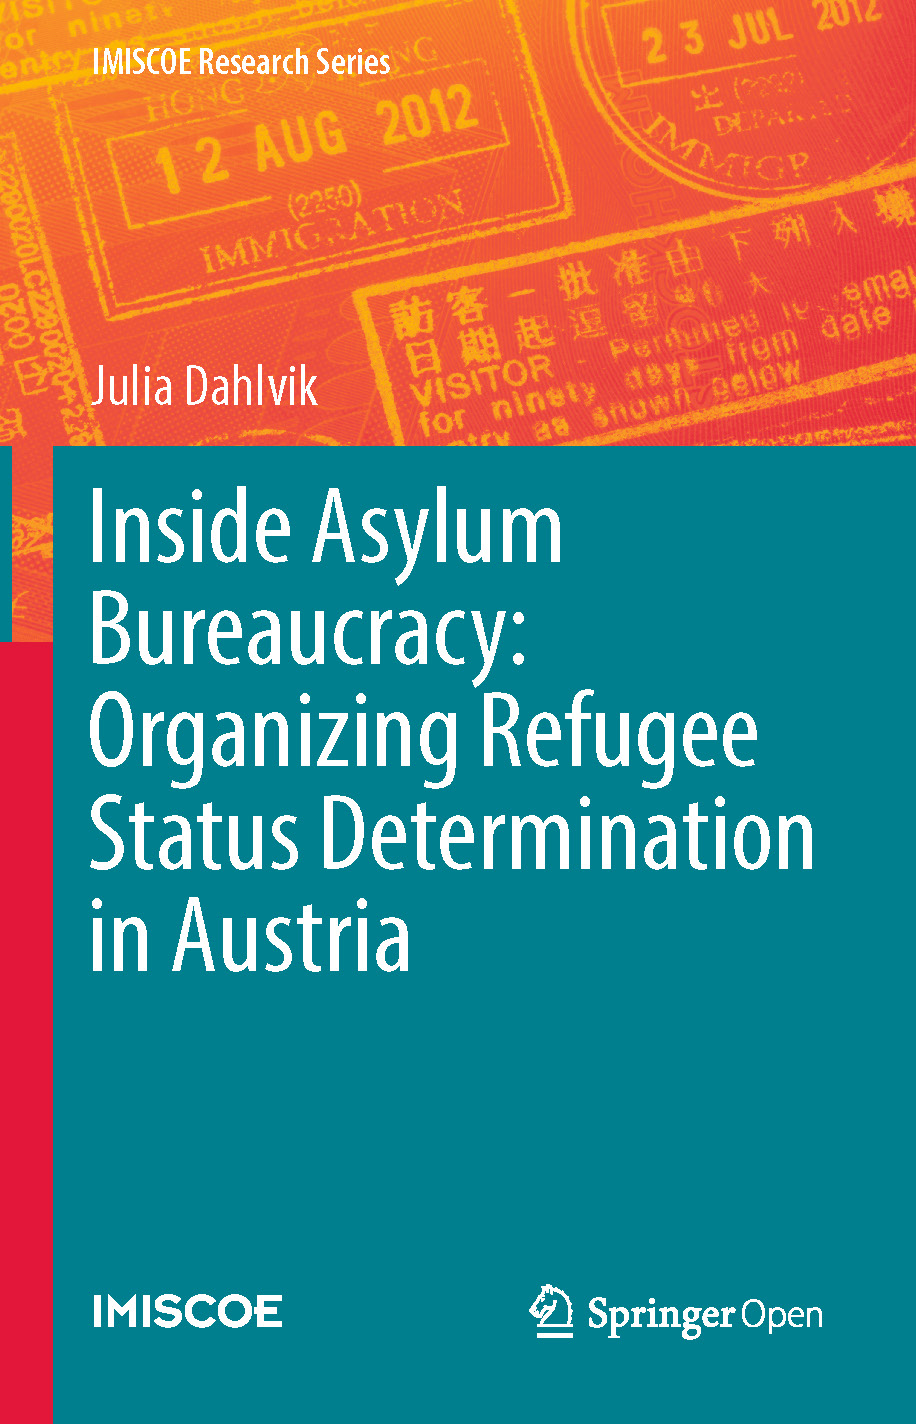 Cover of Inside Asylum Bureaucracy: Organizing Refugee Status Determination in Austria